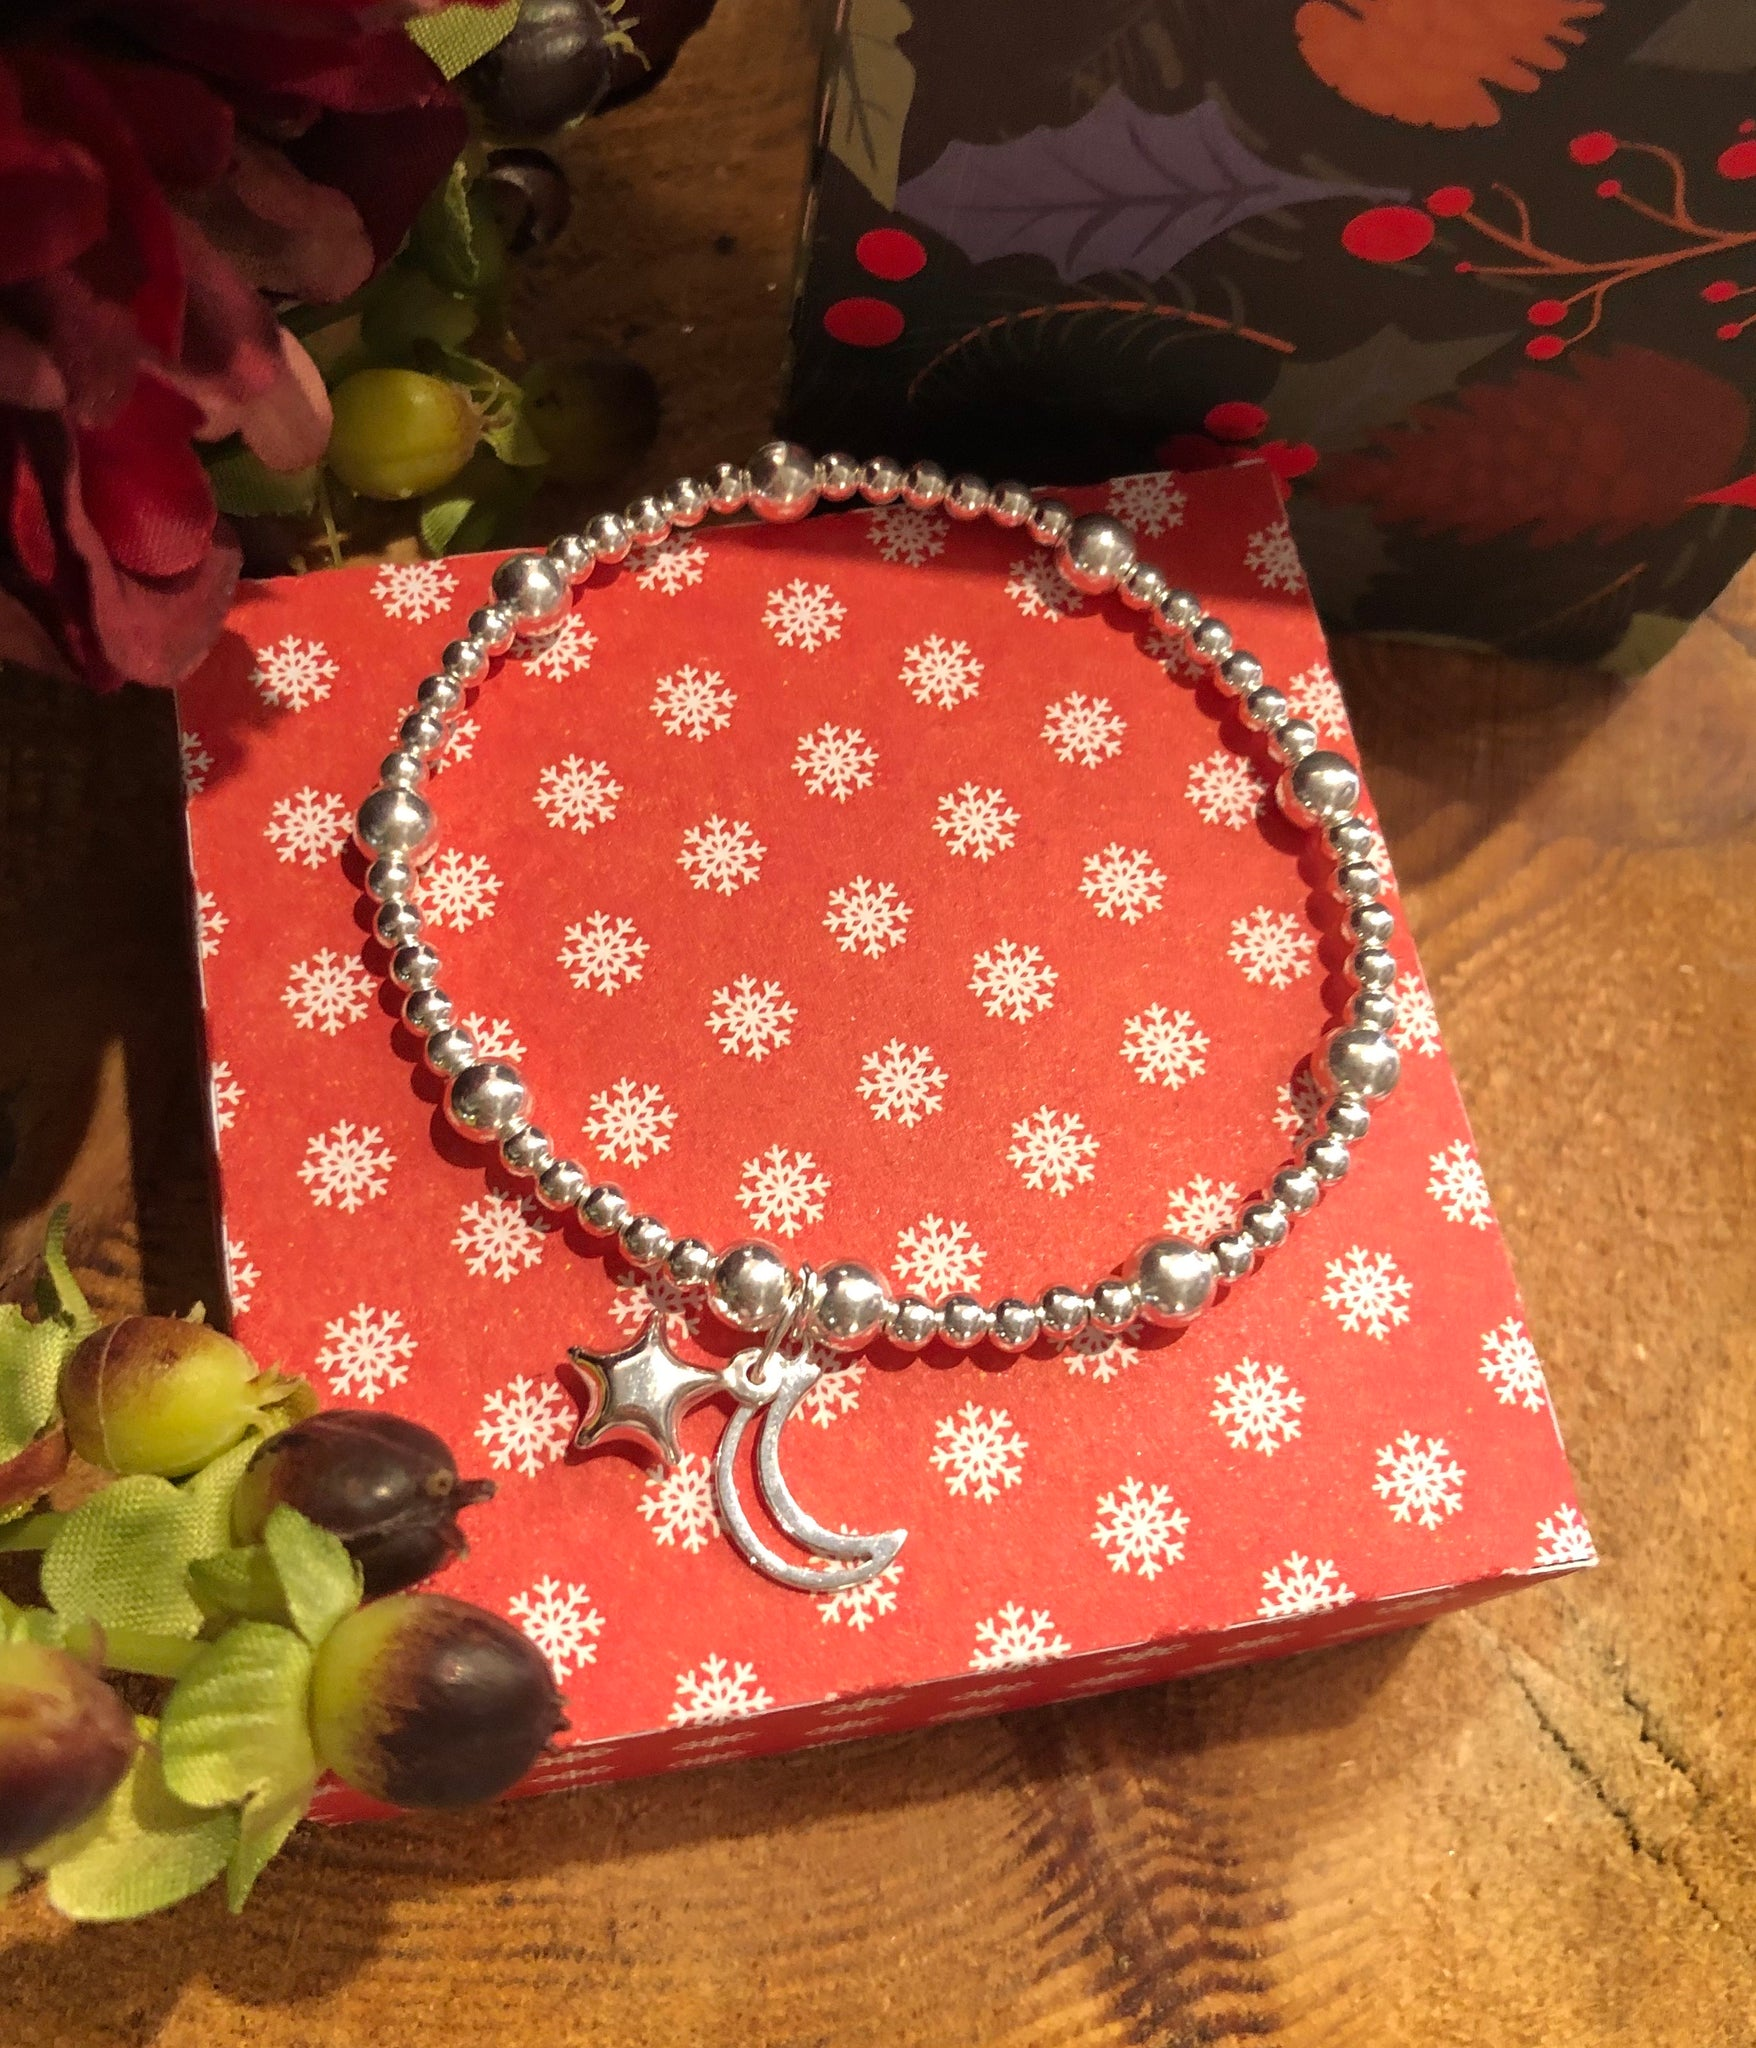 Moon and star charm bracelet